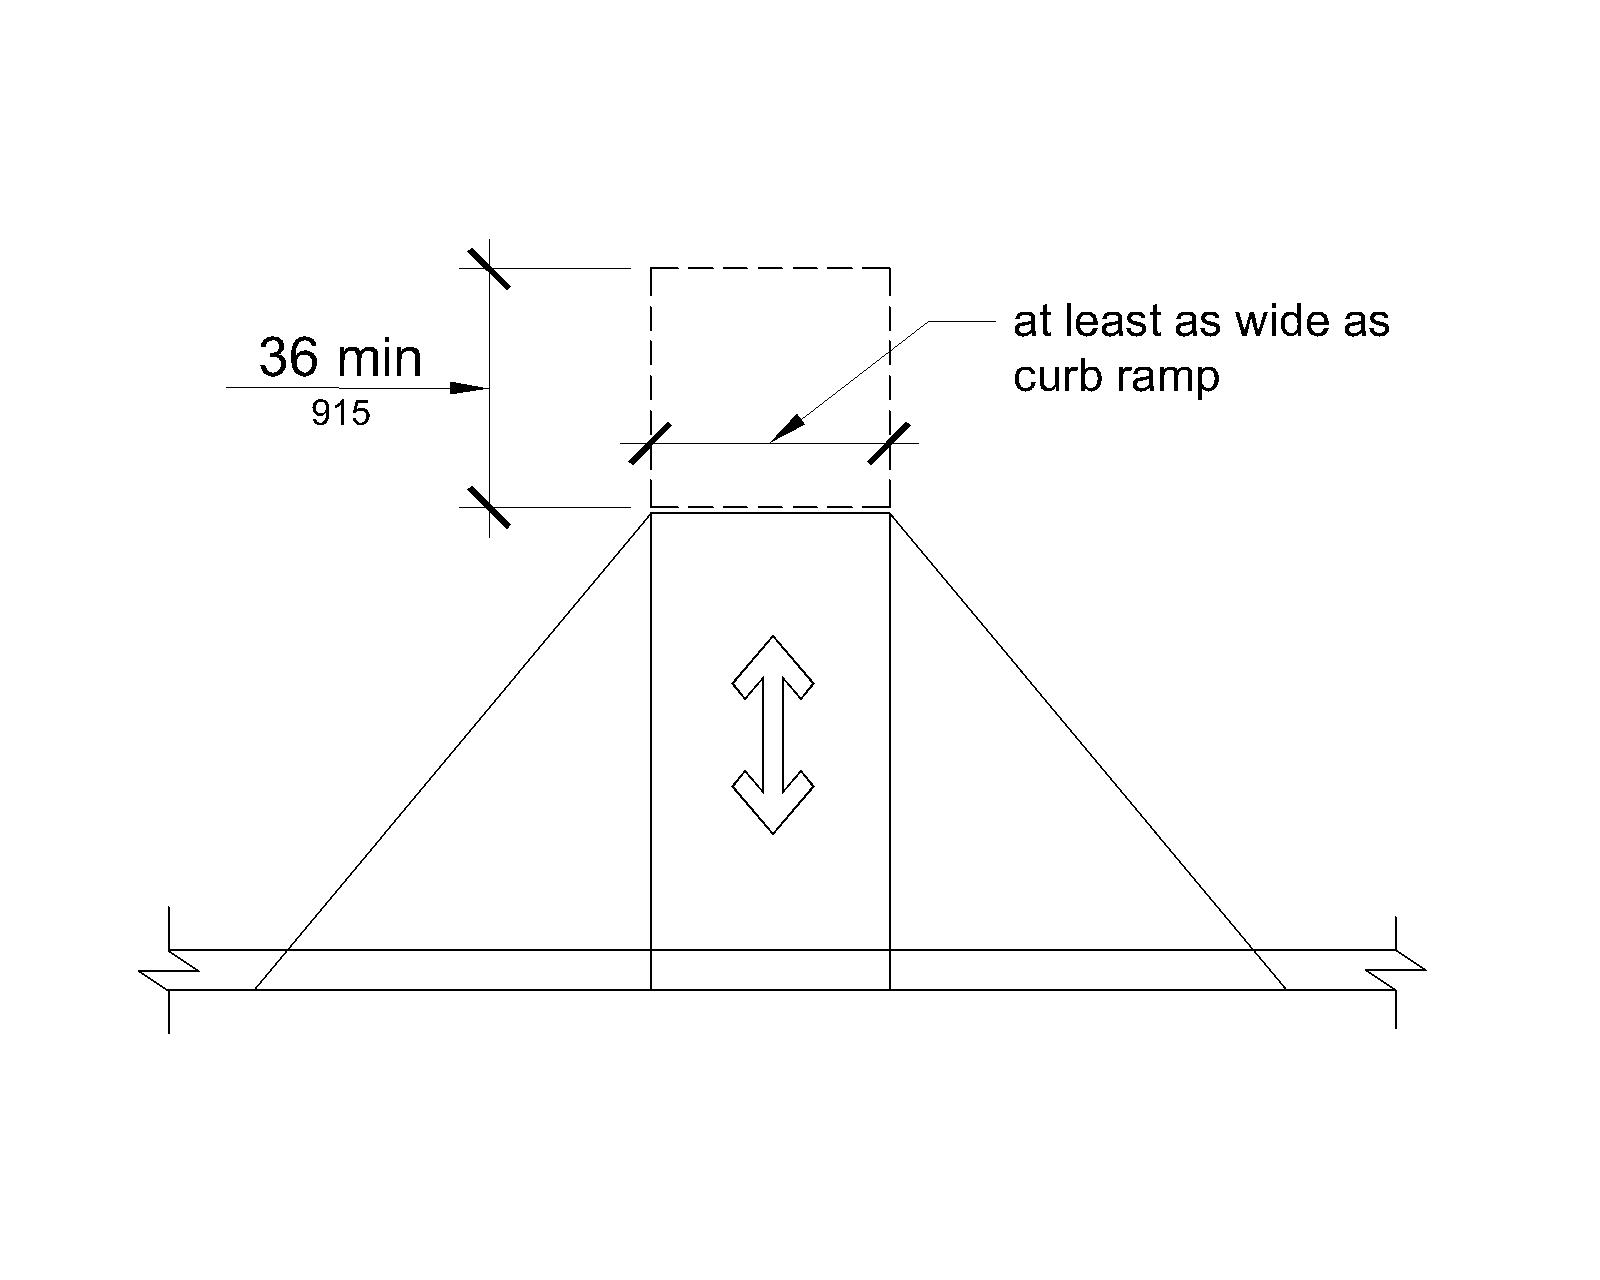 A plan view of a curb ramp shows the required top landing which has a length of 36 inches (915 mm) minimum in the direction of the ramp run and is at least as wide as the ramp.